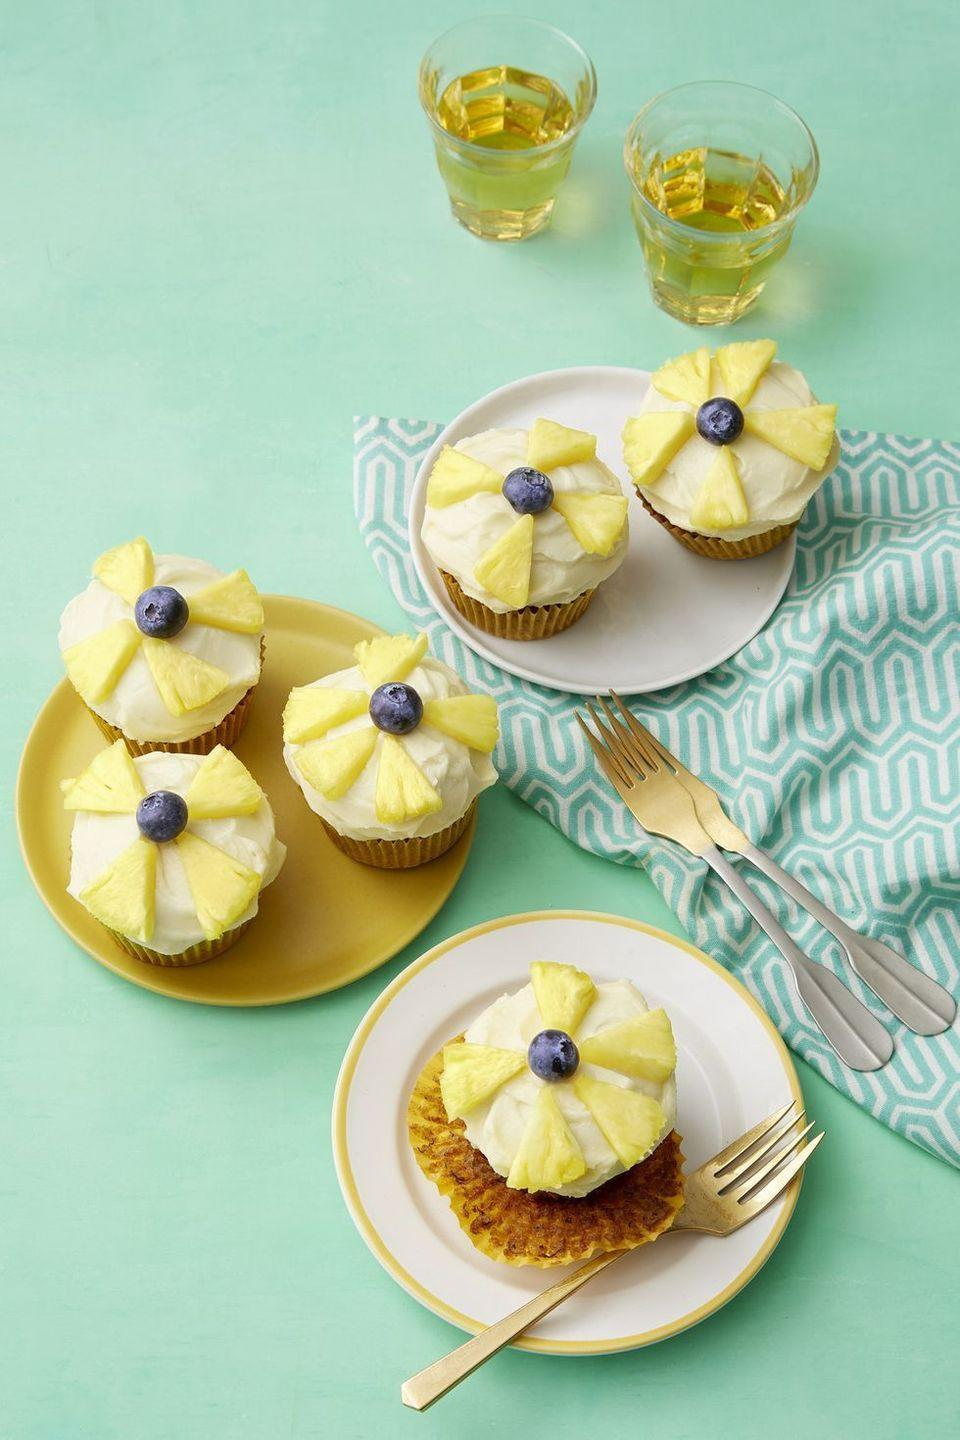 """<p>The pineapple slices topping these cupcakes add a refreshing and sweet taste to your <a href=""""https://www.womansday.com/food-recipes/food-drinks/g3008/4th-of-july-menu/"""" rel=""""nofollow noopener"""" target=""""_blank"""" data-ylk=""""slk:4th of July menu"""" class=""""link rapid-noclick-resp"""">4th of July menu</a>.</p><p><em><strong><a href=""""https://www.womansday.com/food-recipes/food-drinks/a19123934/hummingbird-cupcake-recipe/"""" rel=""""nofollow noopener"""" target=""""_blank"""" data-ylk=""""slk:Get the Hummingbird Cupcakes recipe."""" class=""""link rapid-noclick-resp"""">Get the Hummingbird Cupcakes recipe.</a></strong></em></p>"""